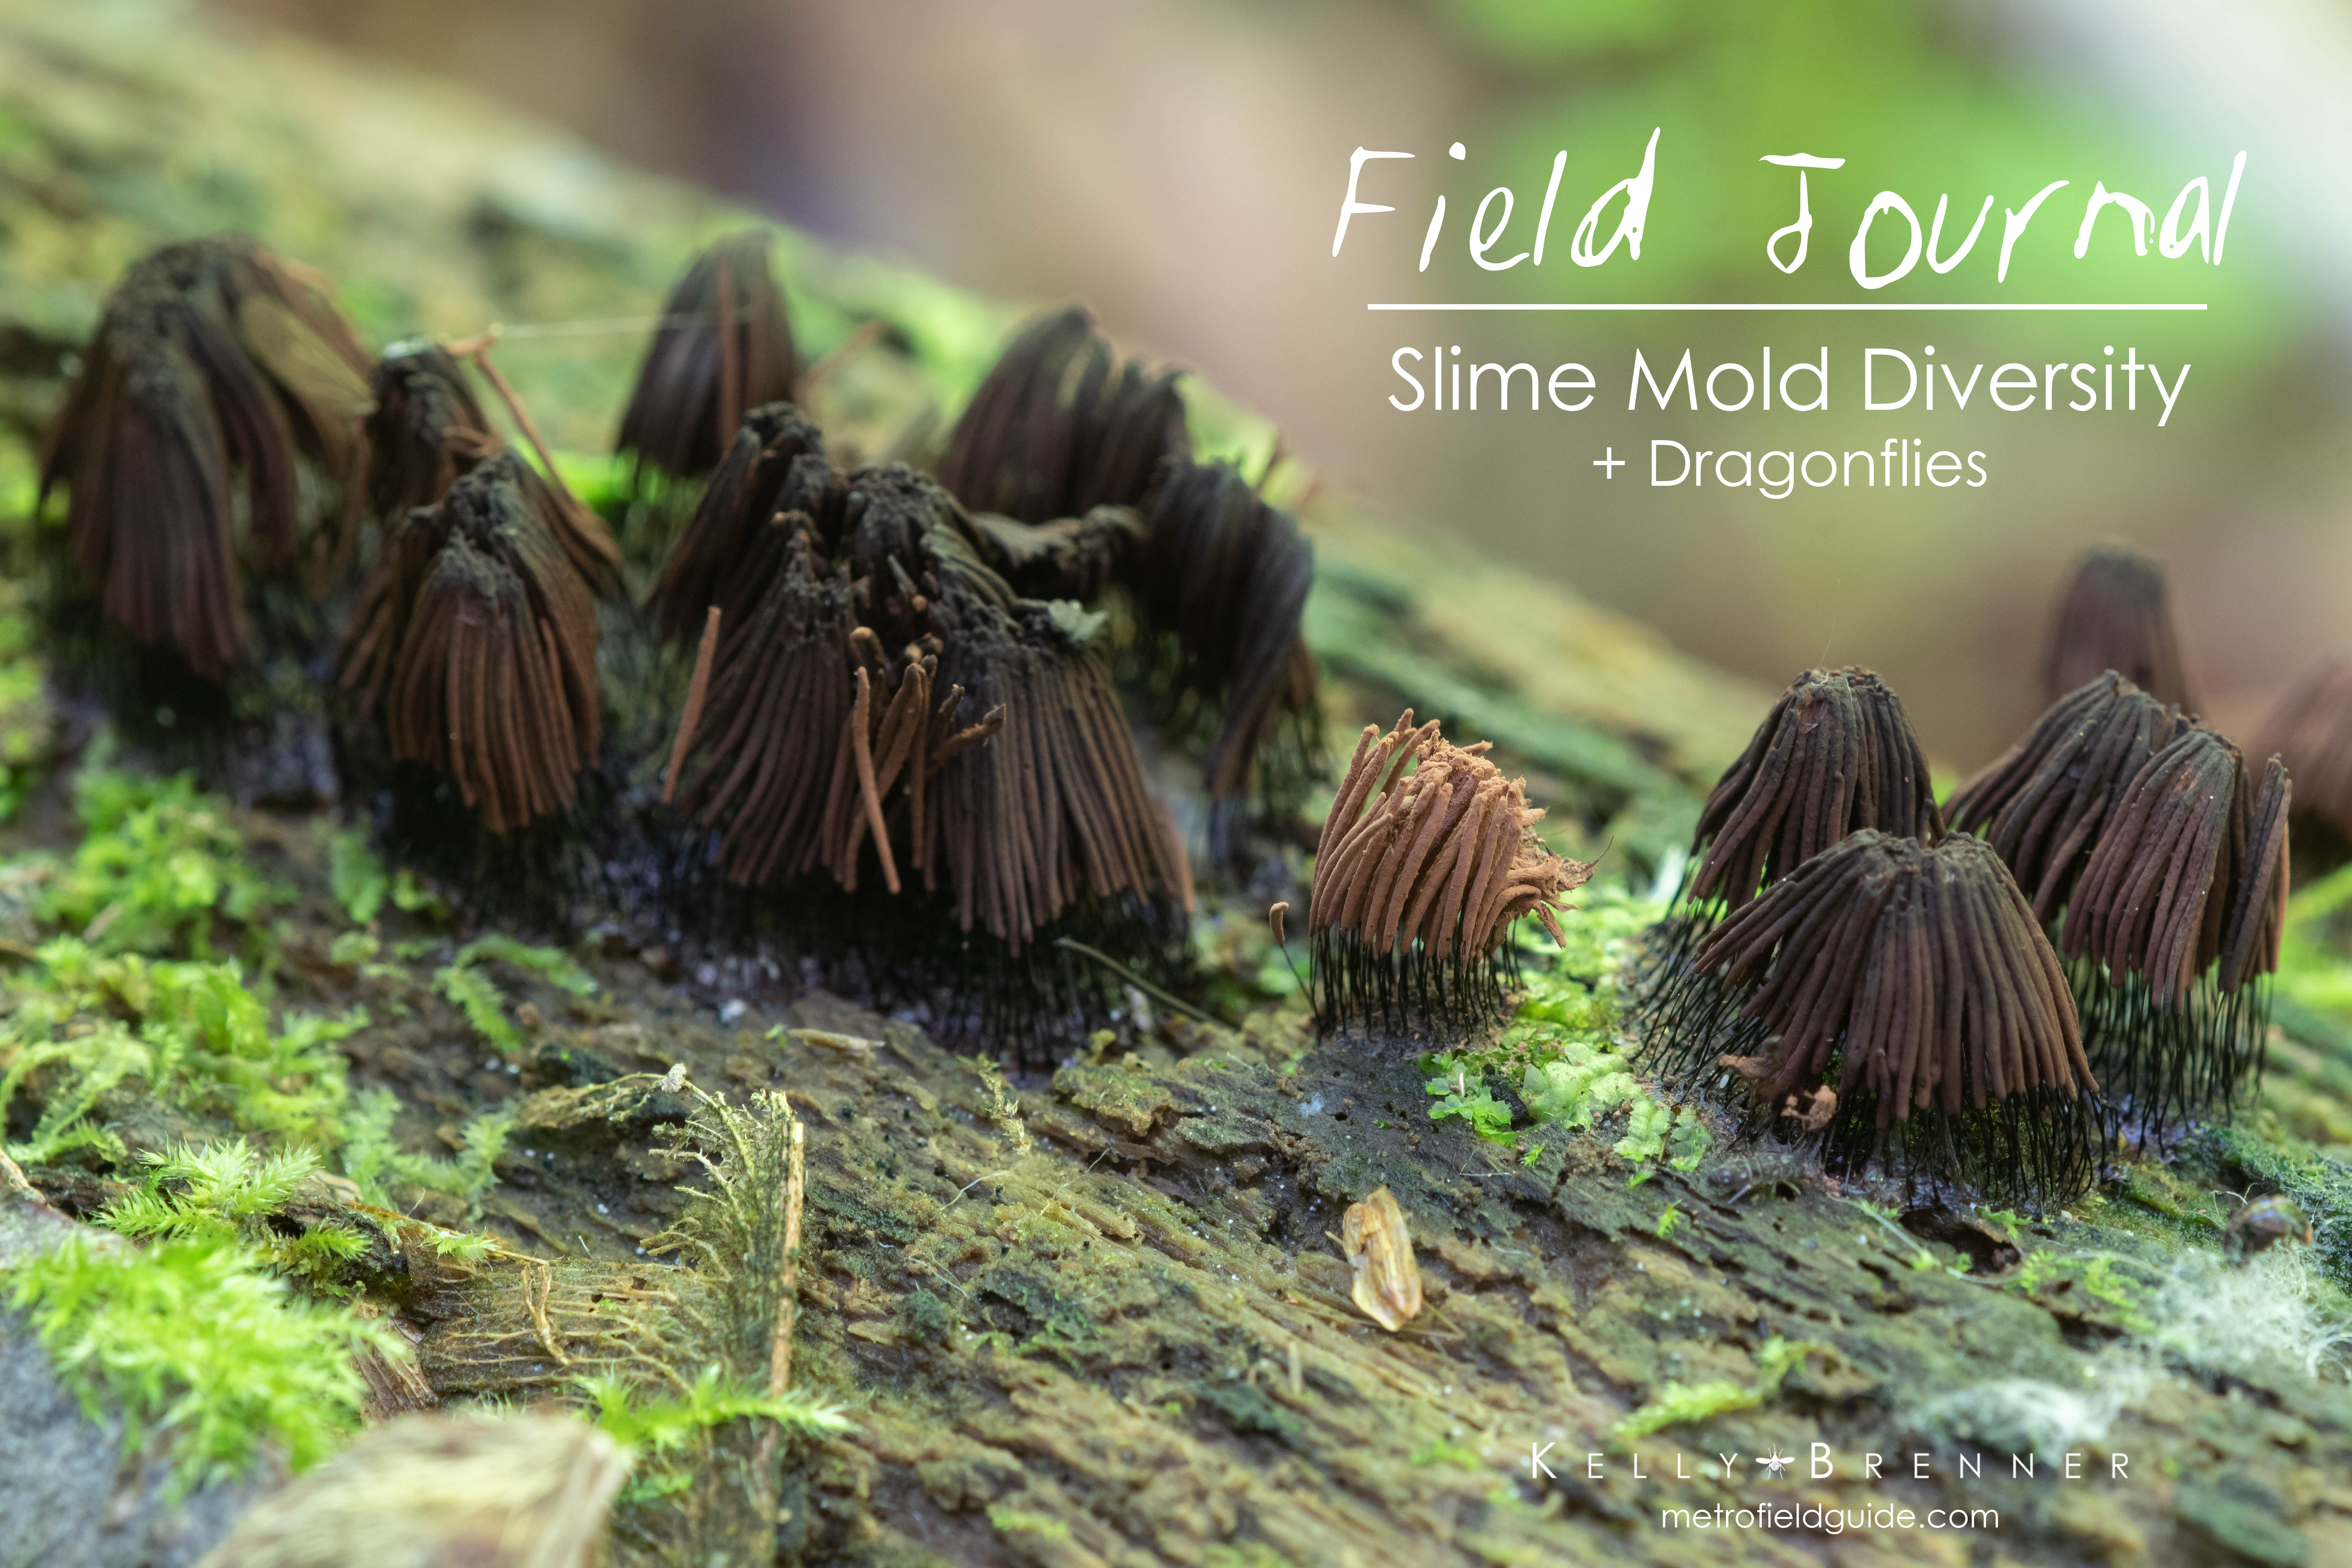 Field Journal: Slime Mold Diversity + Dragonflies